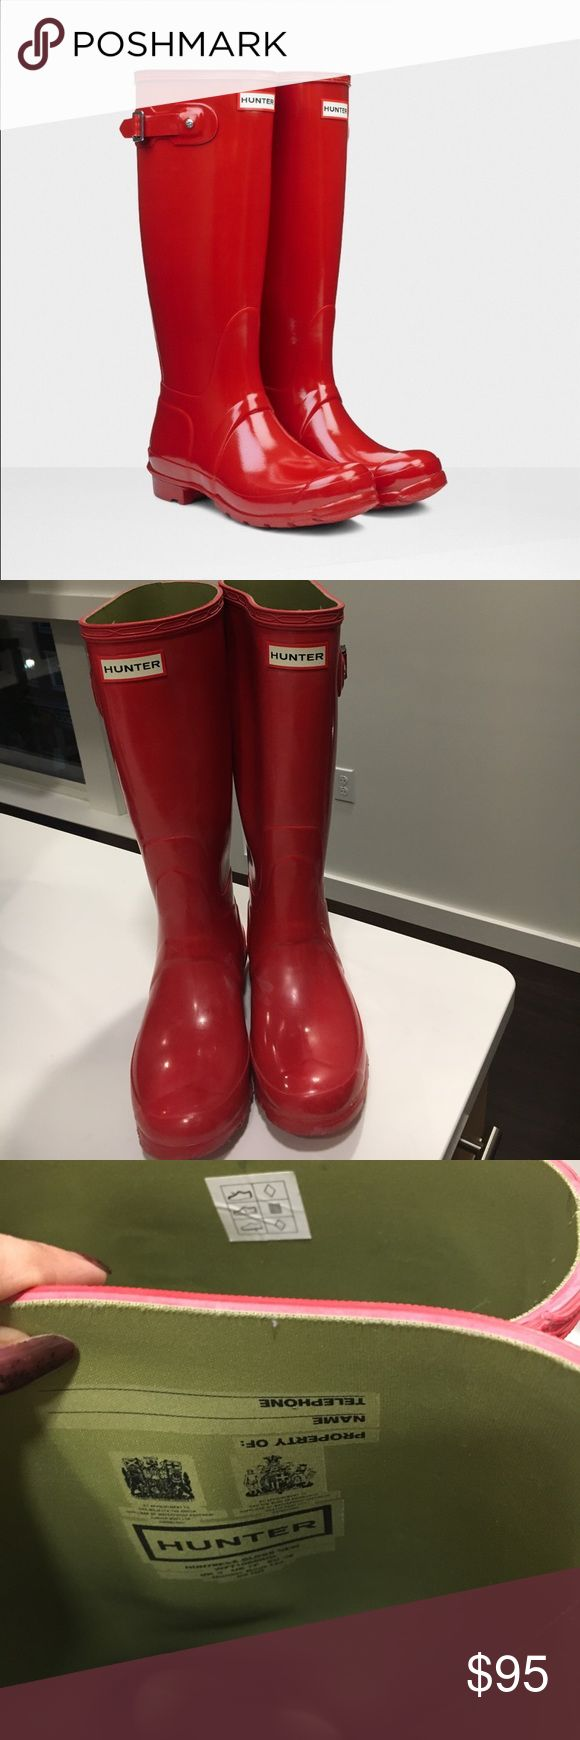 Red tall Hunter rain boots 38 Perfect for a rainy day! UK 5= US 7= EU 38. Boots are made for 7.5 but could fit an 8 fine also! The bit of wear it has is pictured but these were very well taken care and of. Feel free to ask questions! 😊 Hunter Boots Shoes Winter & Rain Boots